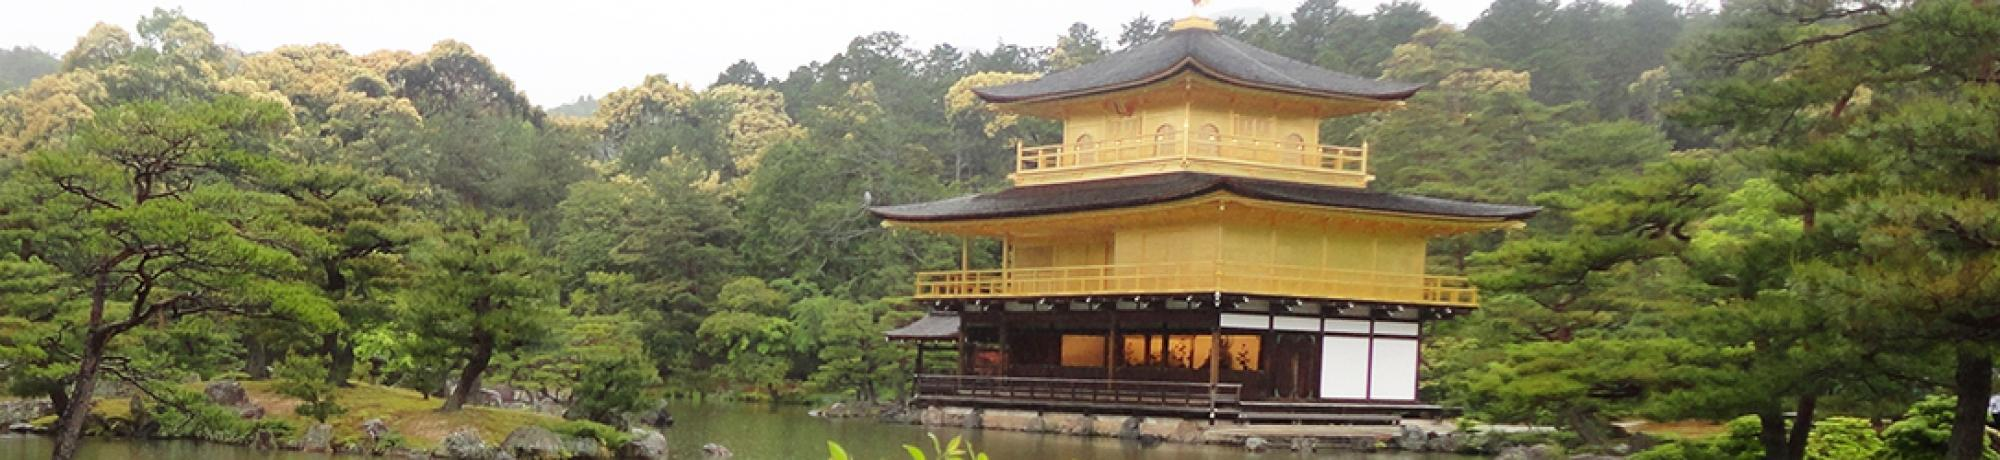 Golden Pavilion, Zen temple in northern Kyoto, Japan